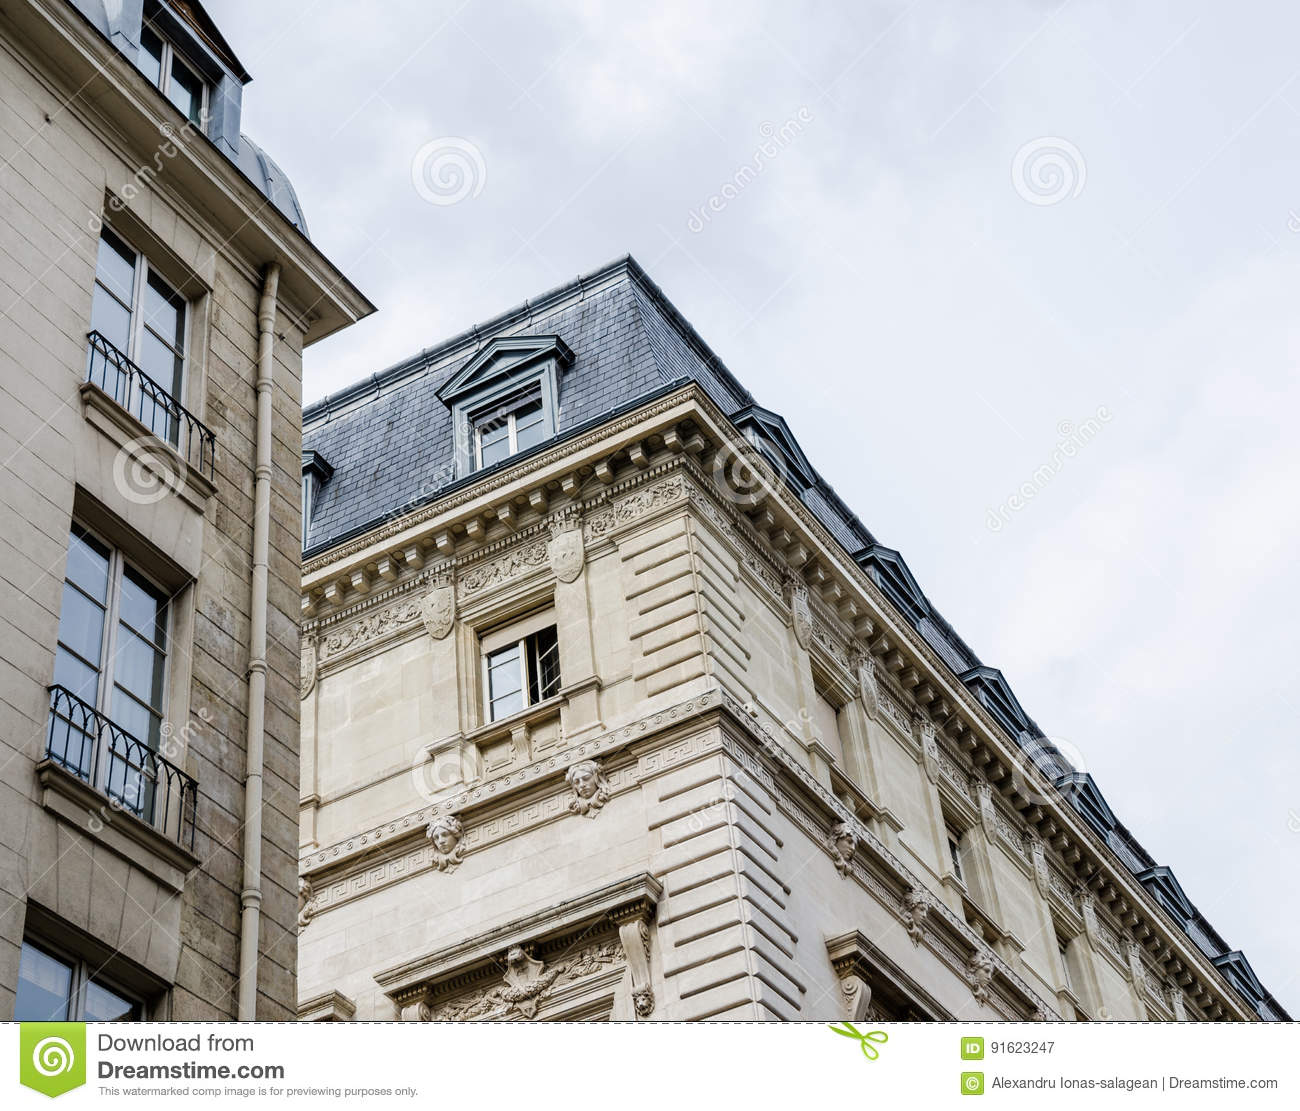 perspective of classic french buildings in paris stock image imageclose perspective view of generic buildings in paris, france, with beautiful balconets and attics with dormer windows typical of french architecture